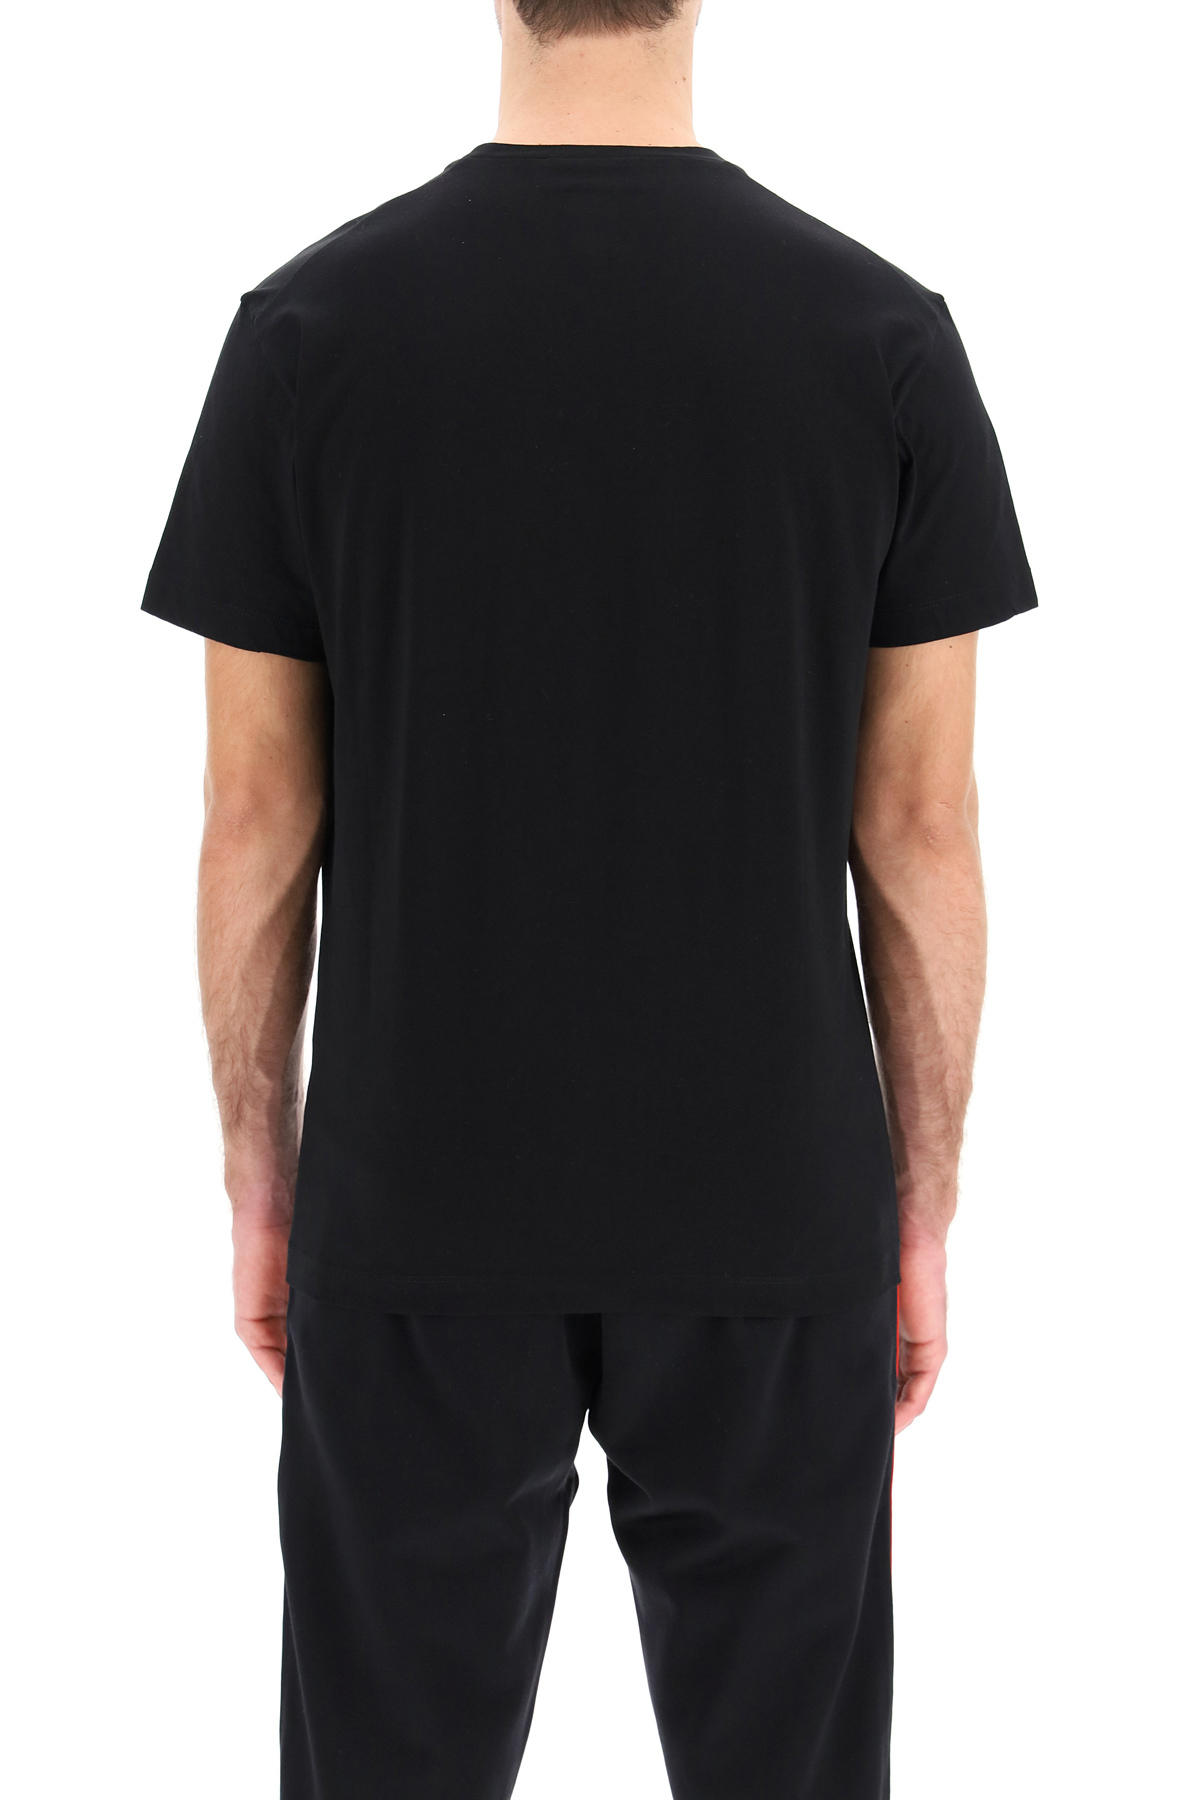 Dsquared2 t-shirt taped2